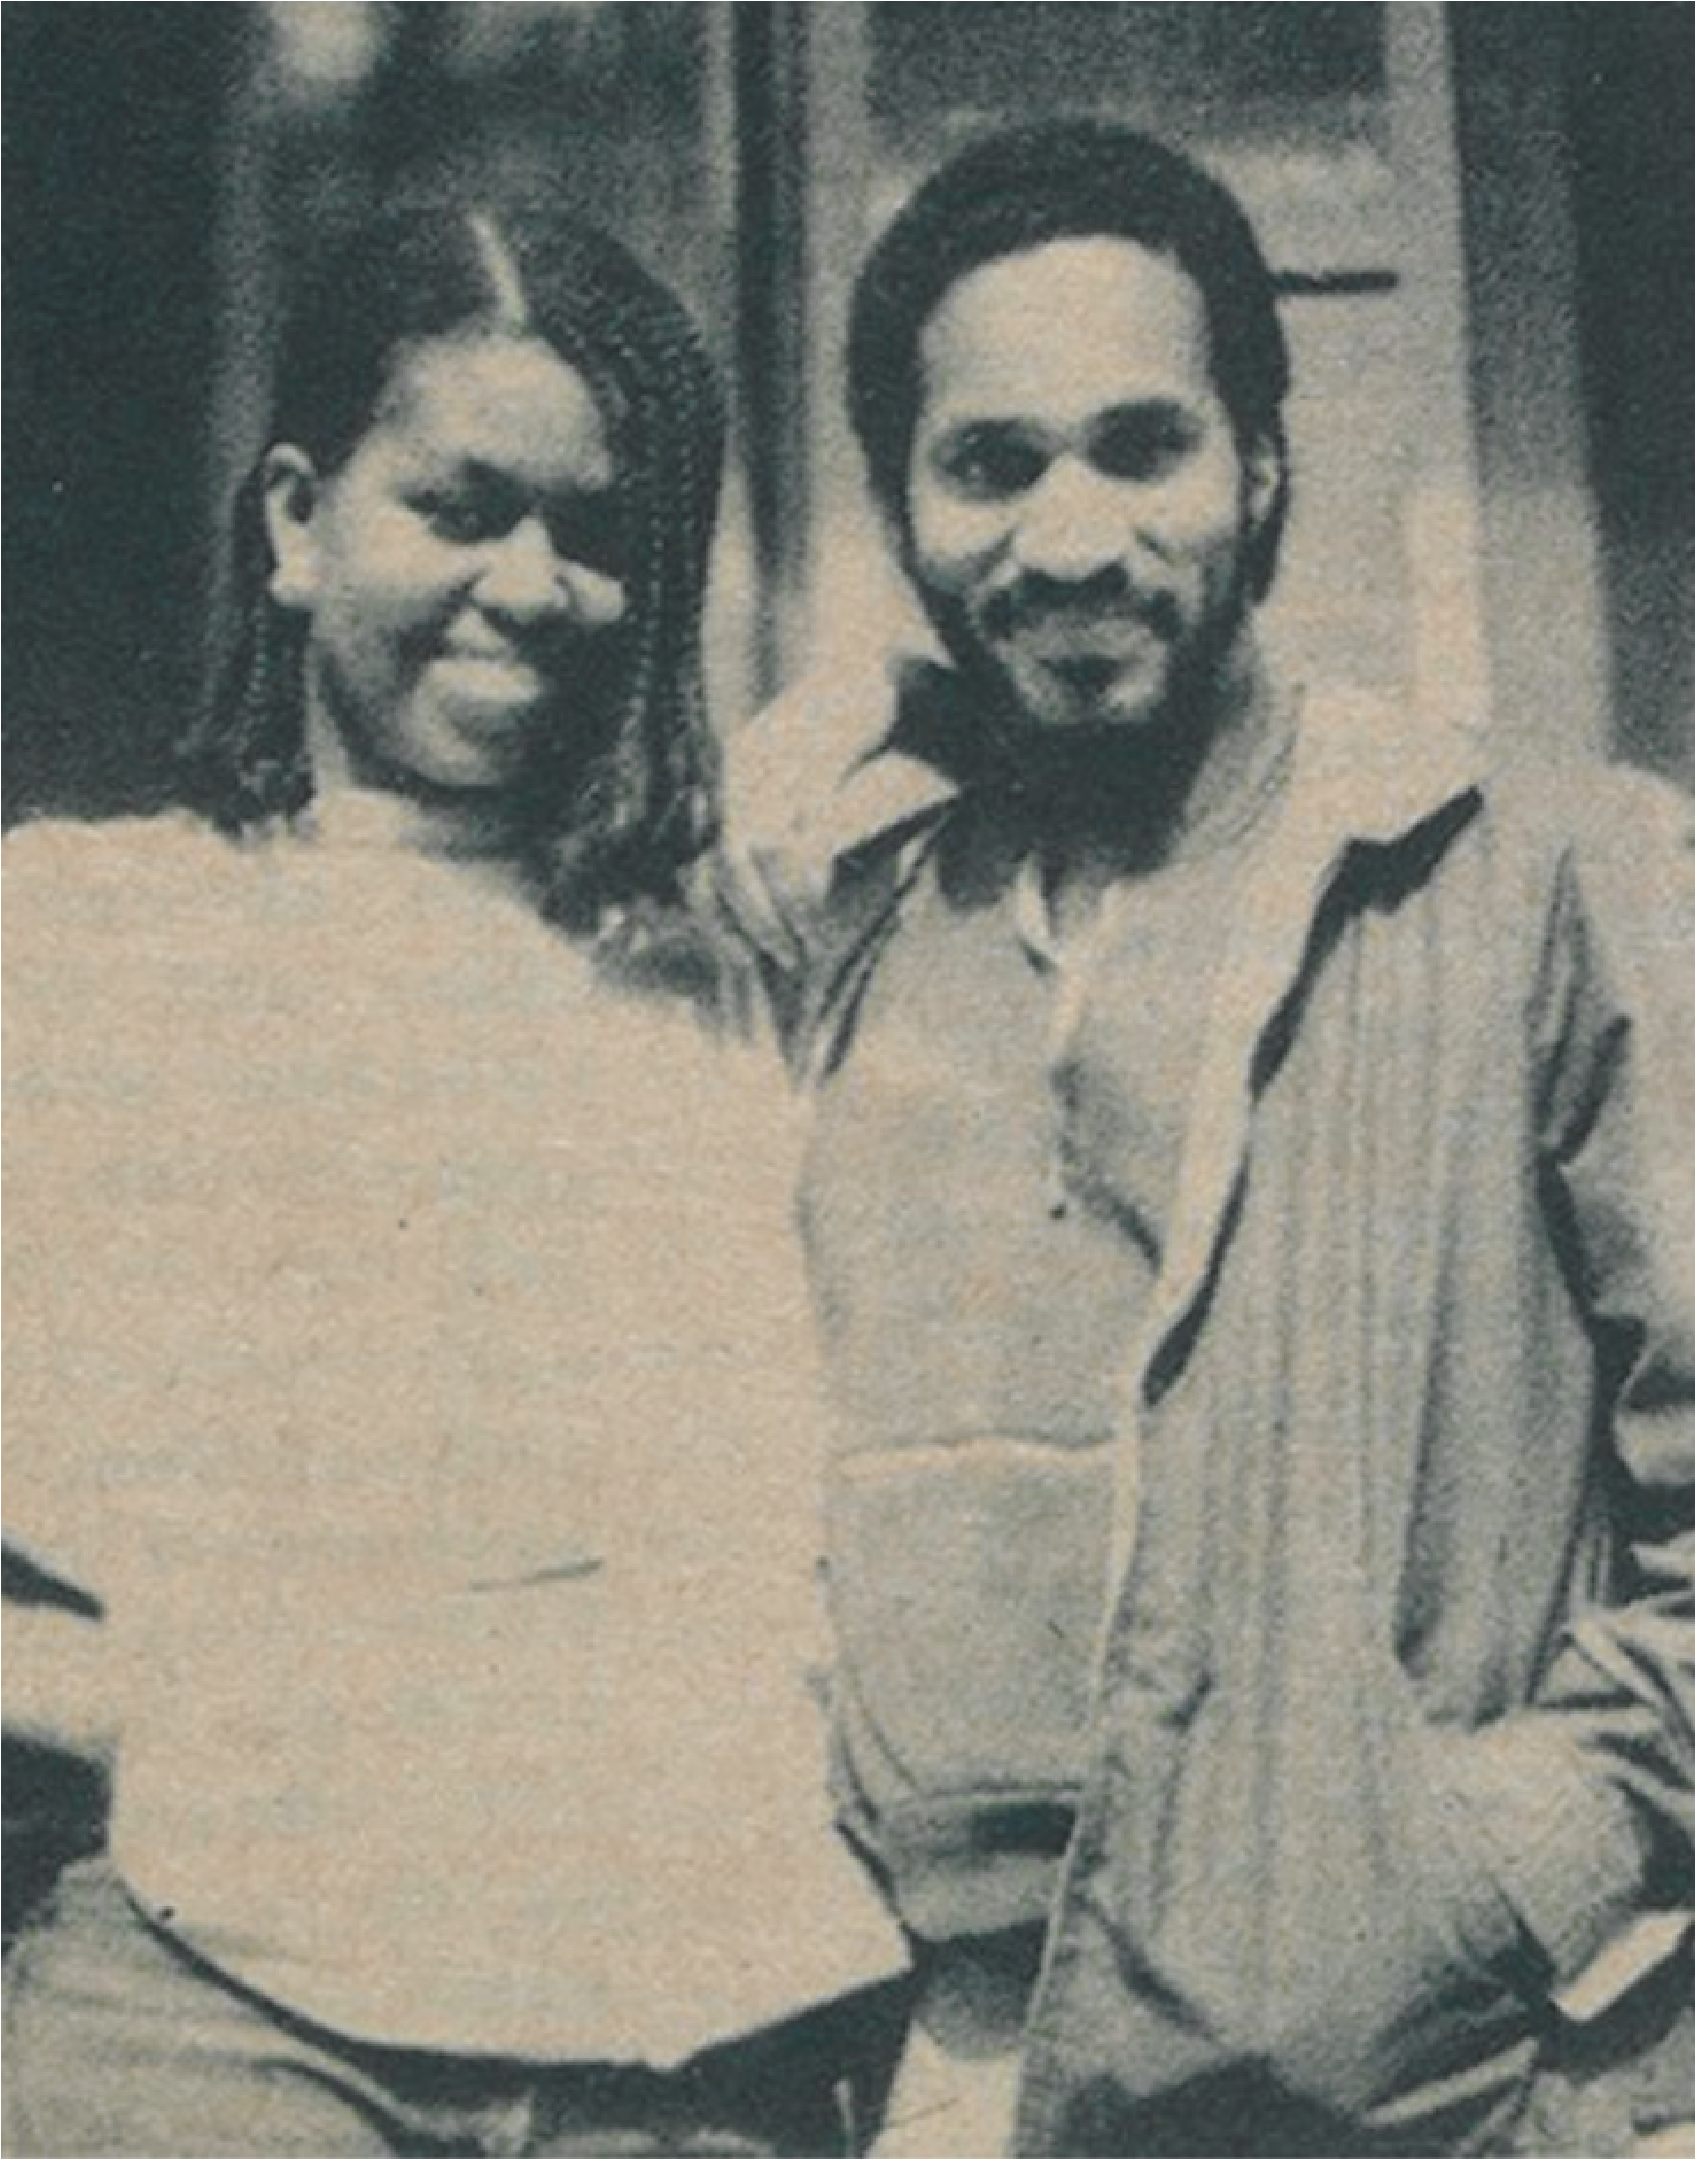 Michelle Obama '85 posing with another student in 1984.